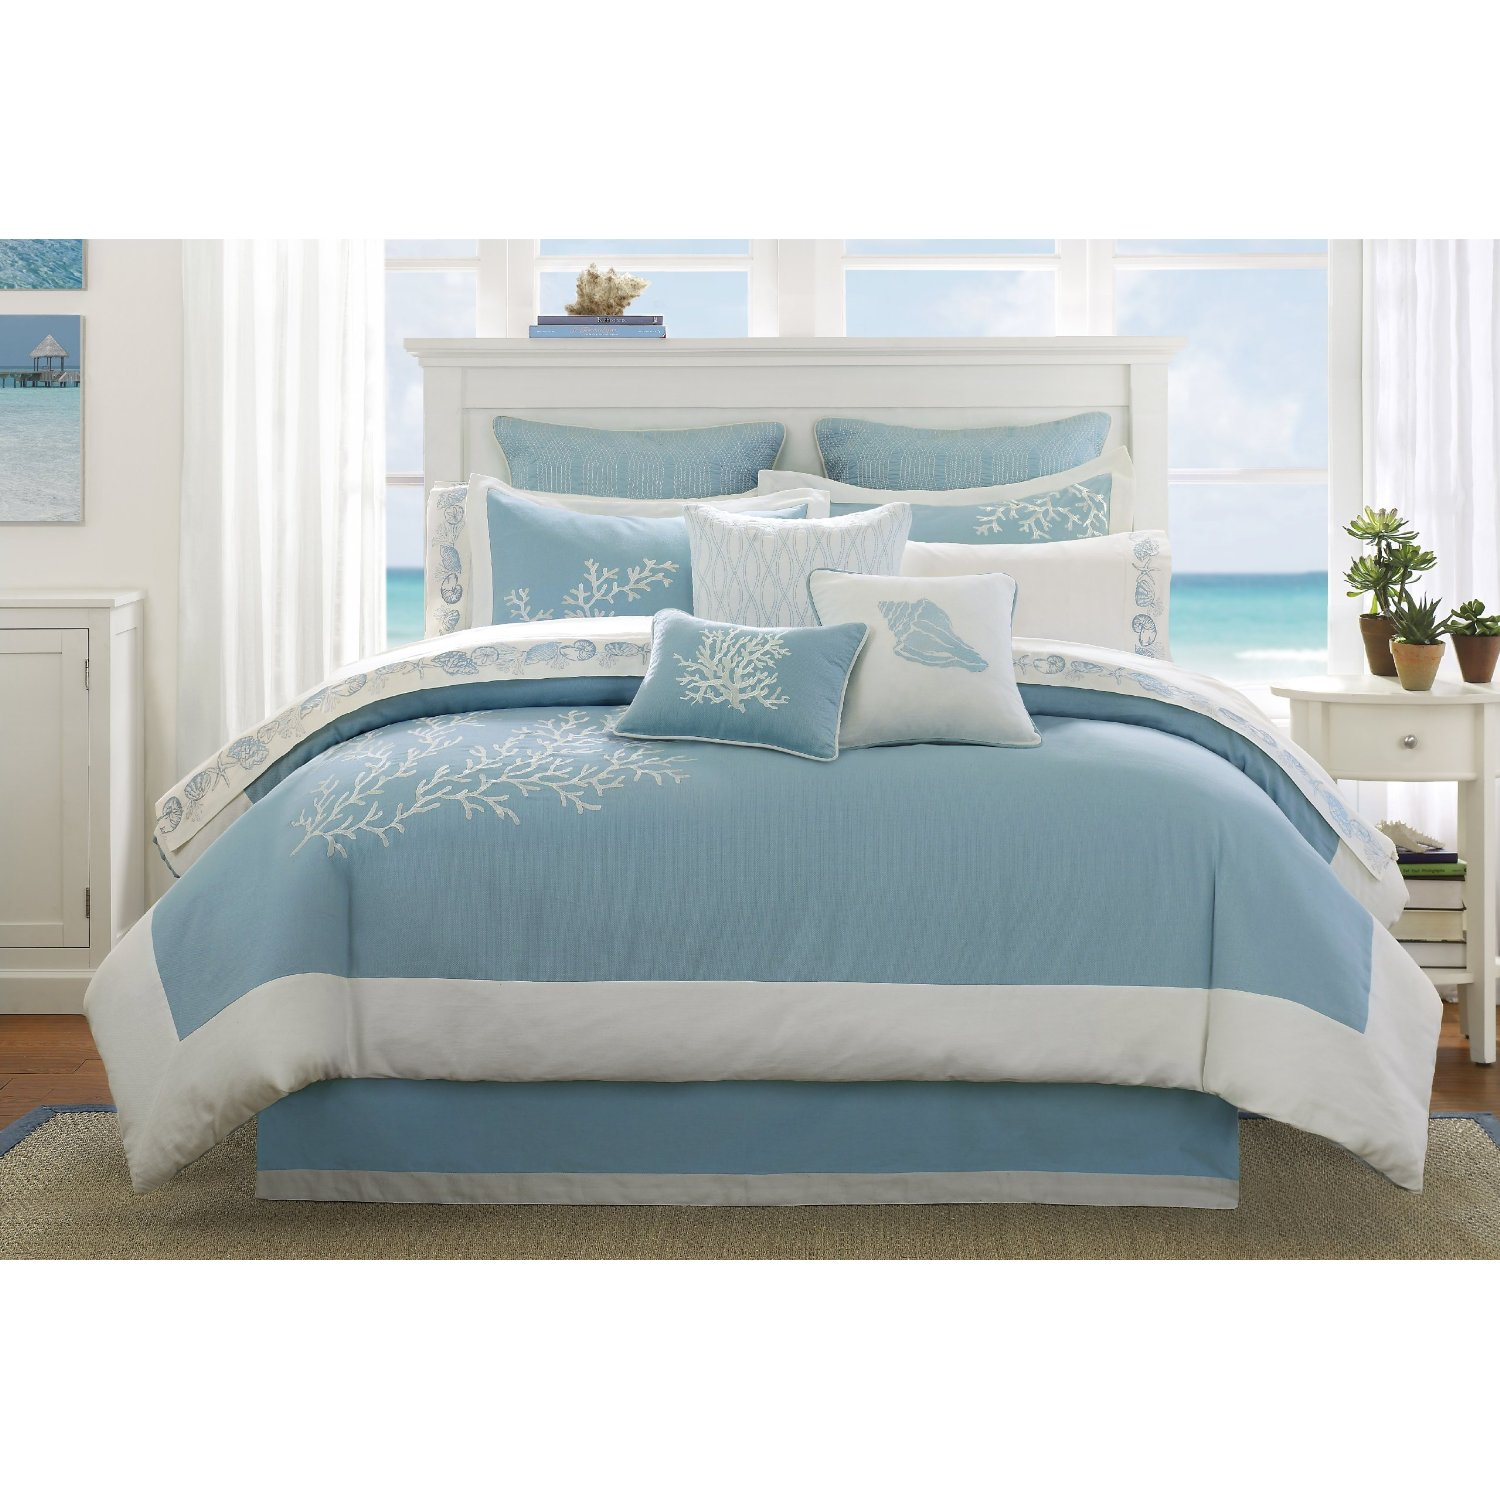 Light blue bedding sets home furniture design for Home decorating company bedding